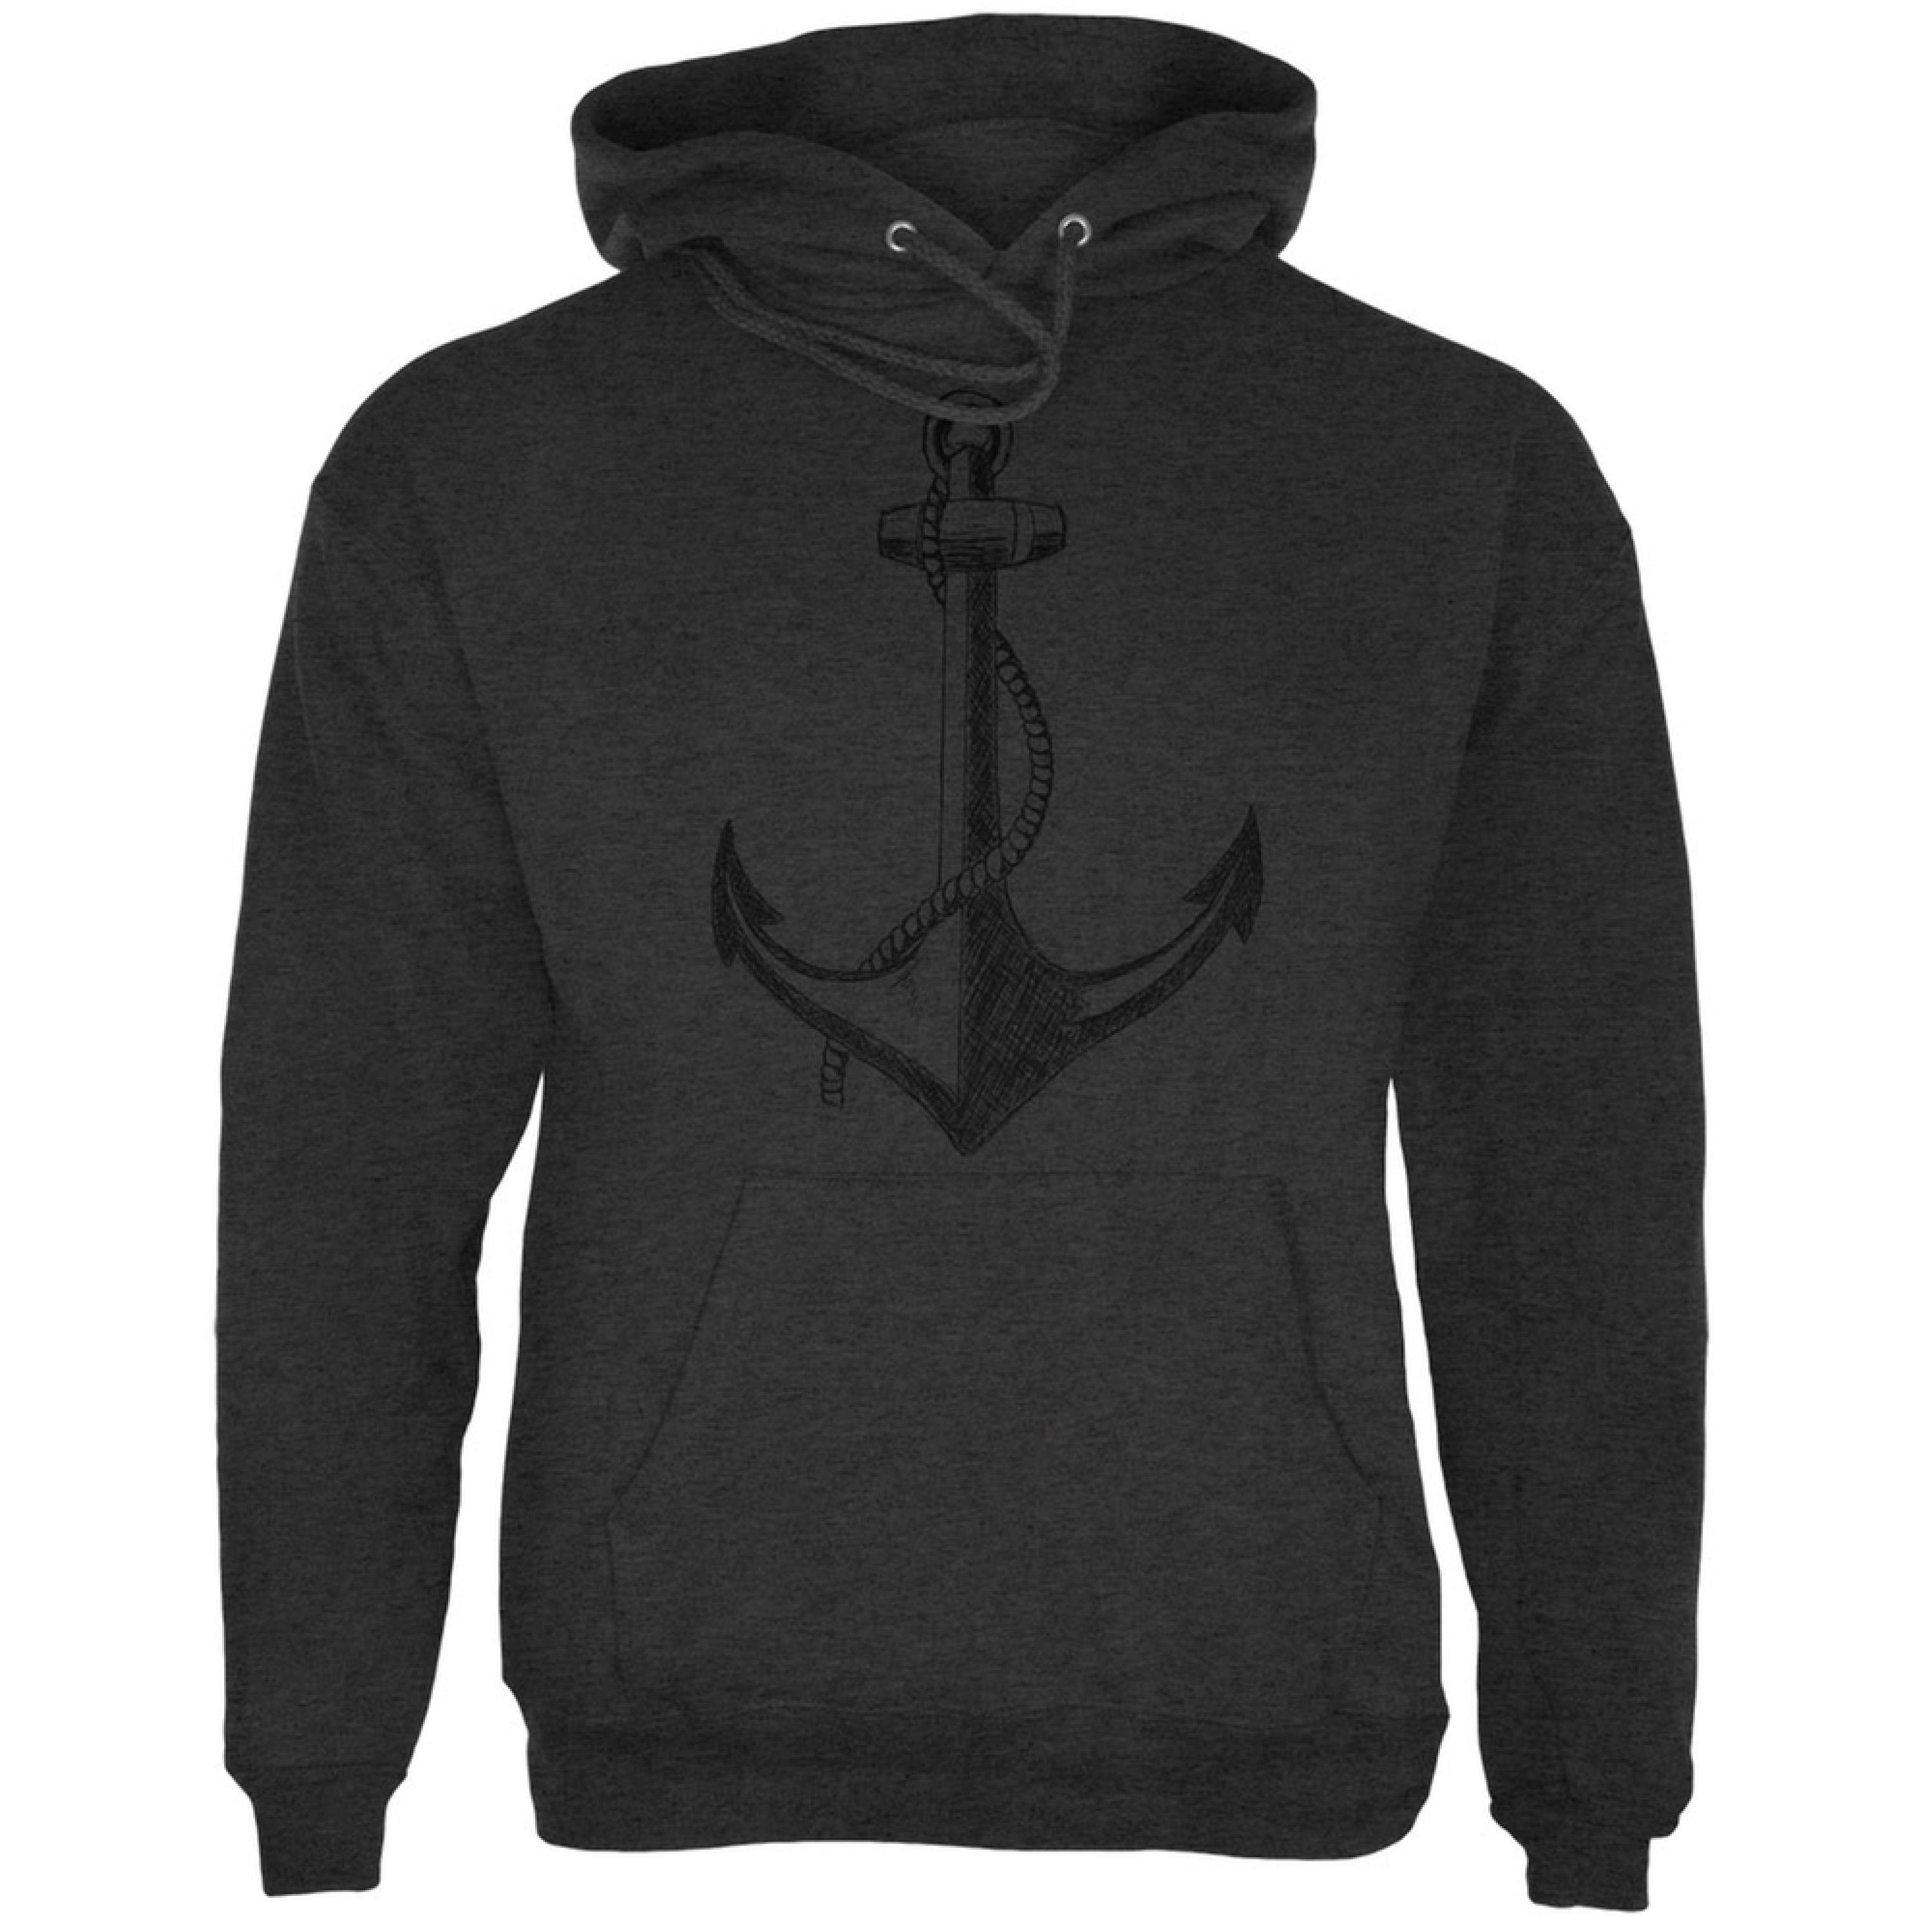 Summer Anchor Charcoal Heather Adult Hoodie